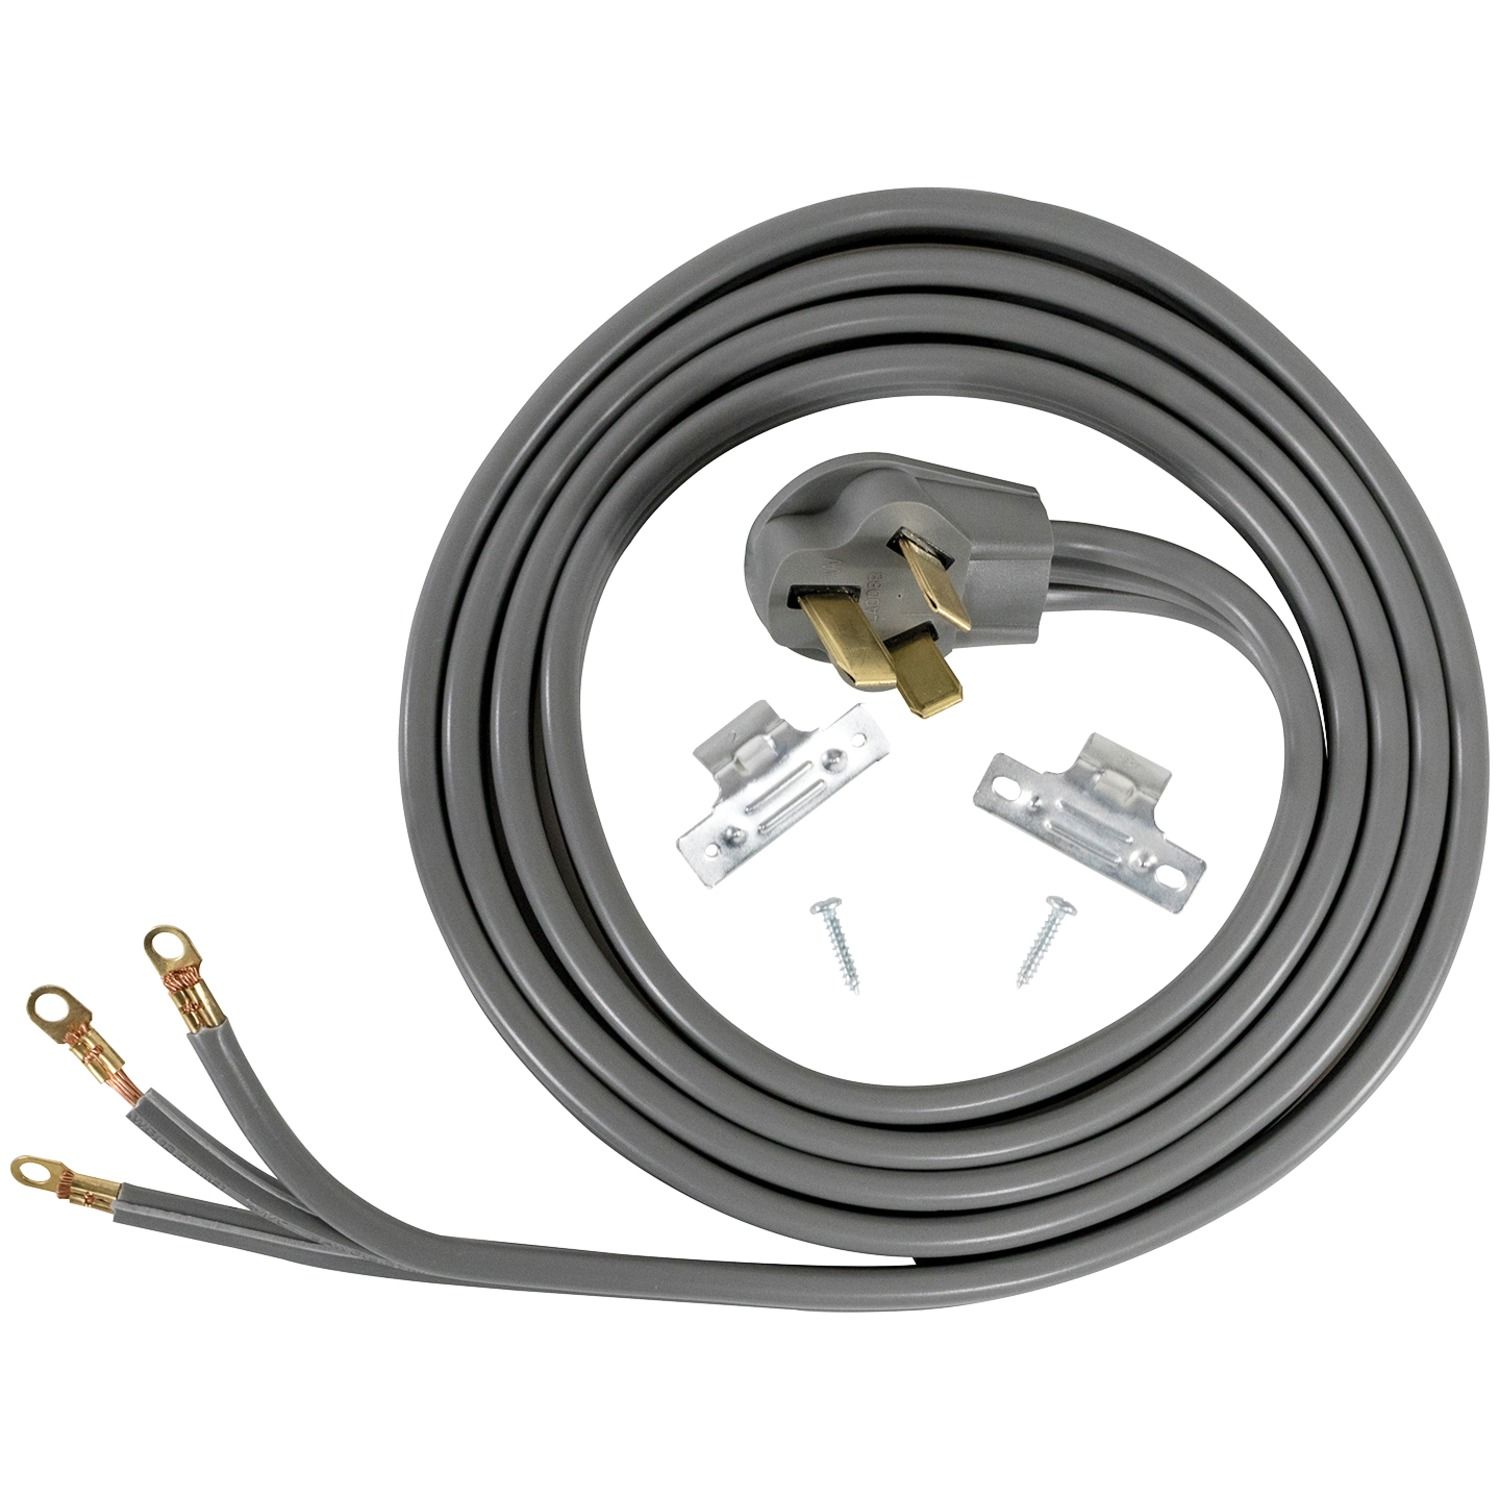 Certified Appliance Accessories 90-1088 3-Wire Closed-Eyelet 50-Amp Range Cord, 10Ft